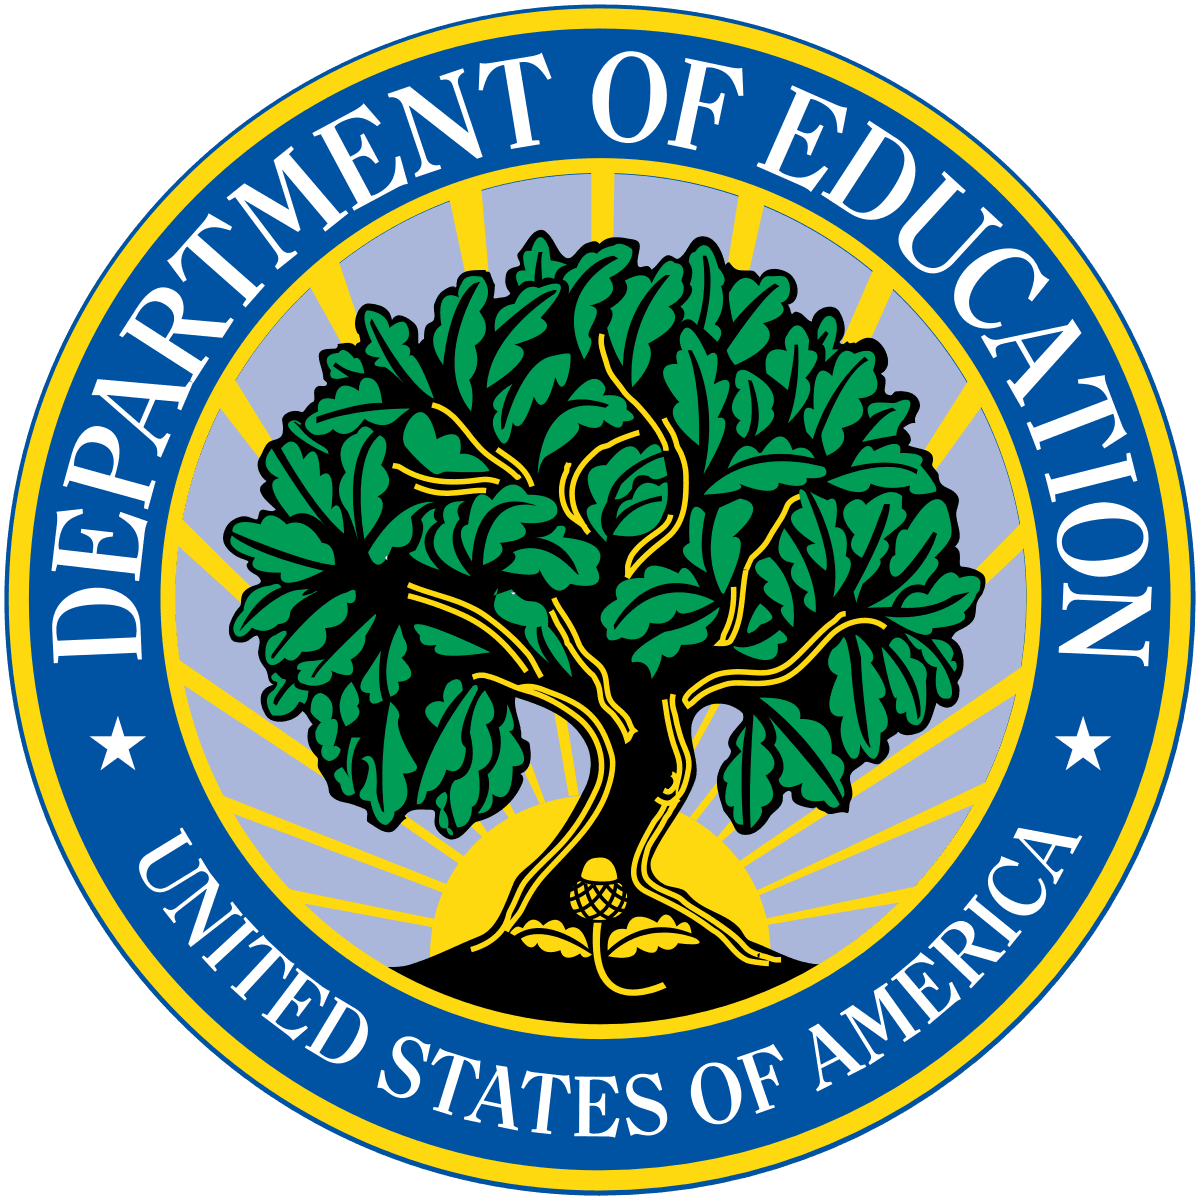 dept of ed logo Opens in new window